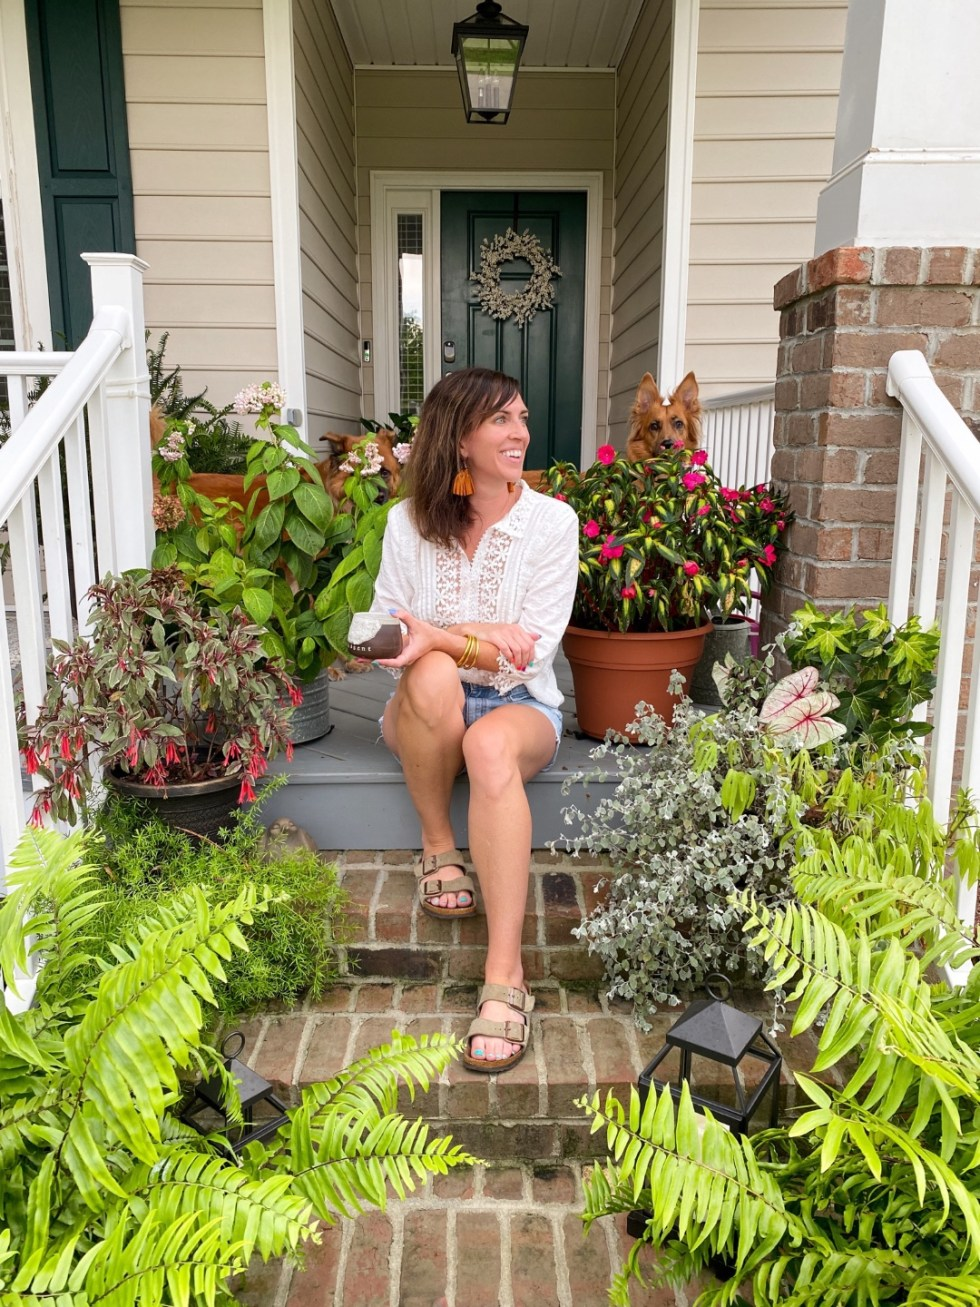 How to Wear White After Labor Day - I'm Fixin' To - @imfixintoblog   White After Labor Day by popular NC fashion blog, I'm Fixin' To: image of a woman sitting on her front porch steps and wearing a white blouse iwht brown strap sandals, and cut off denim shorts.